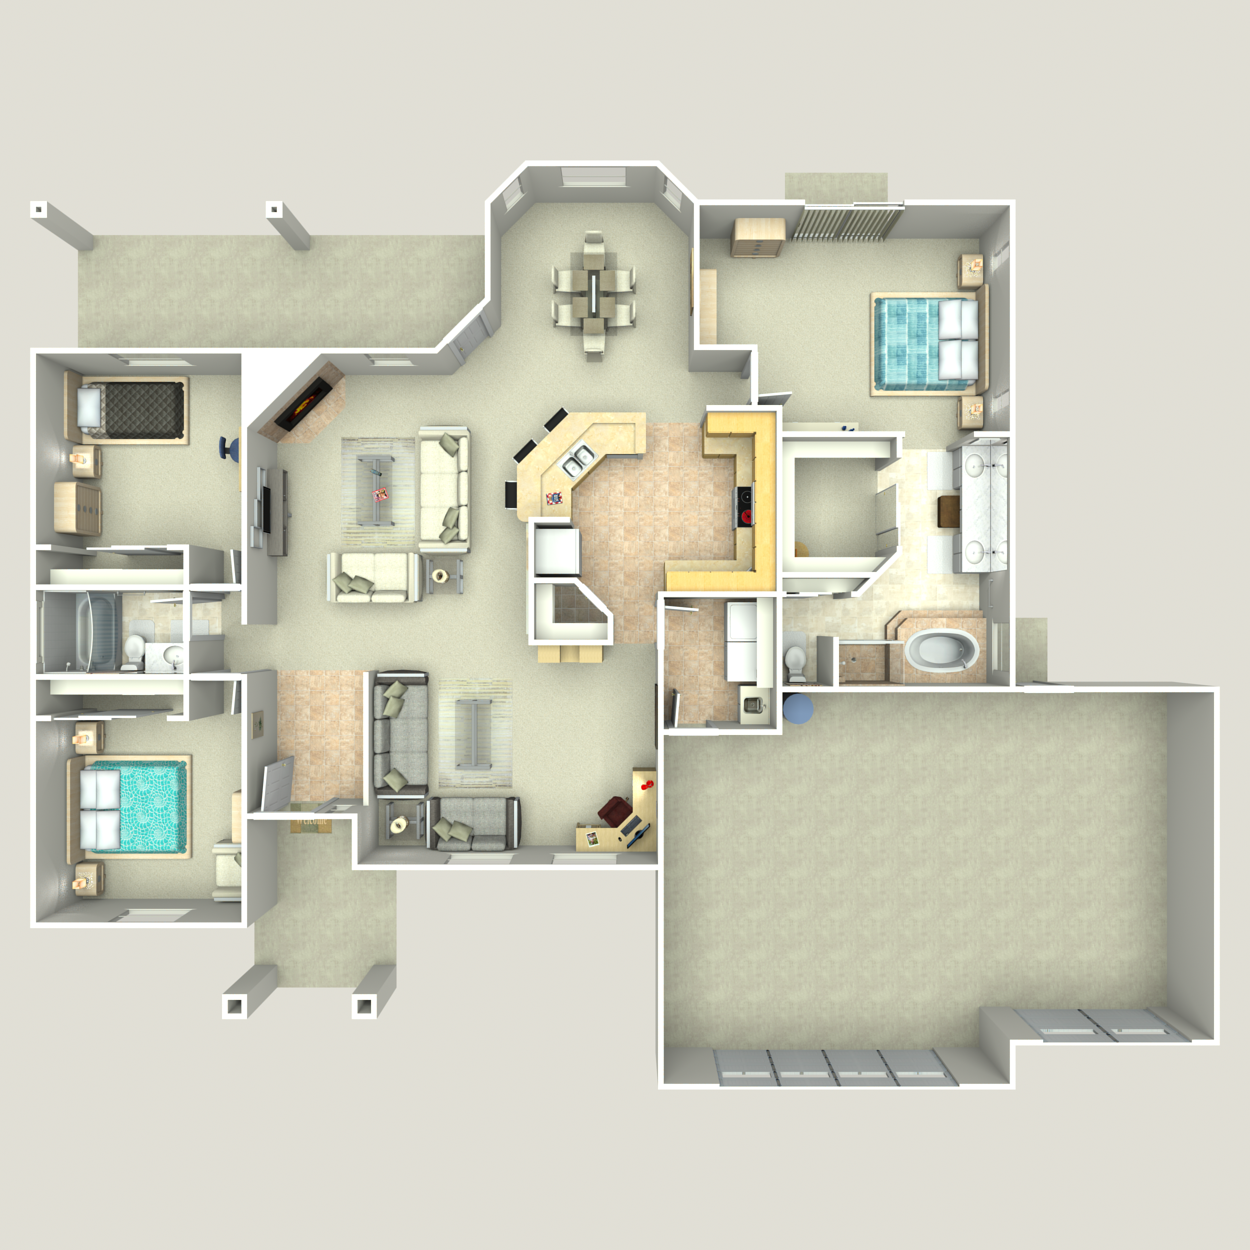 Floor plan image of Monterey II